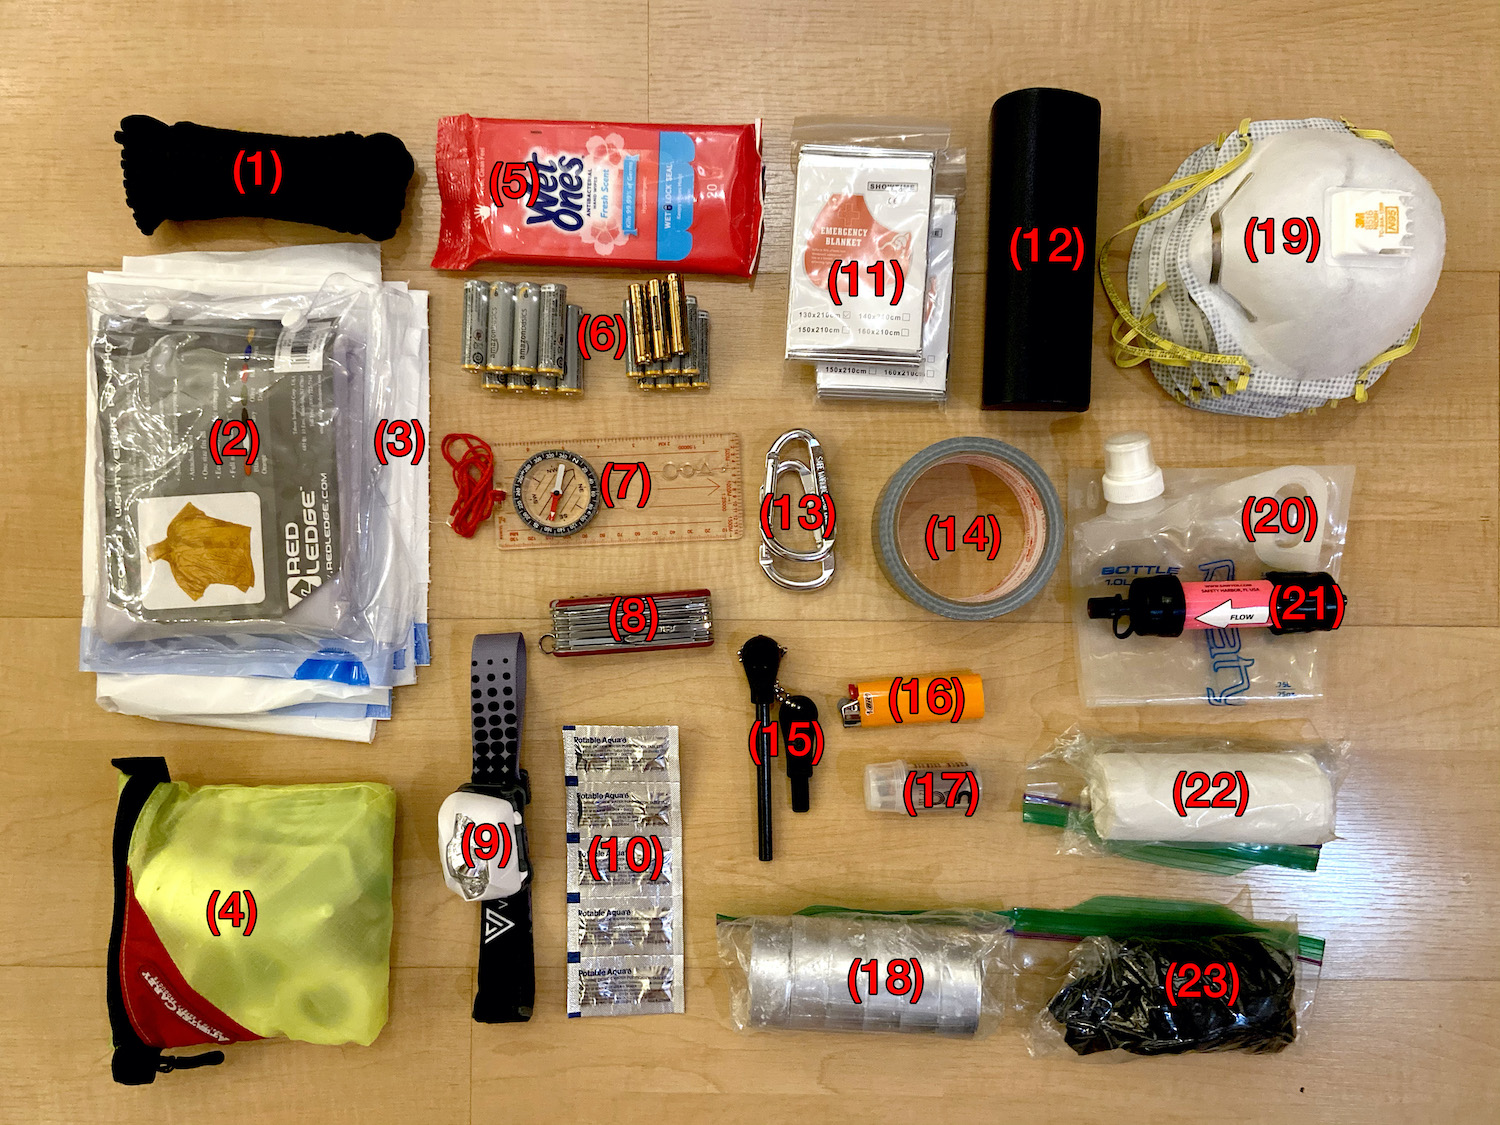 Image of House Kit with items labeled with numbers